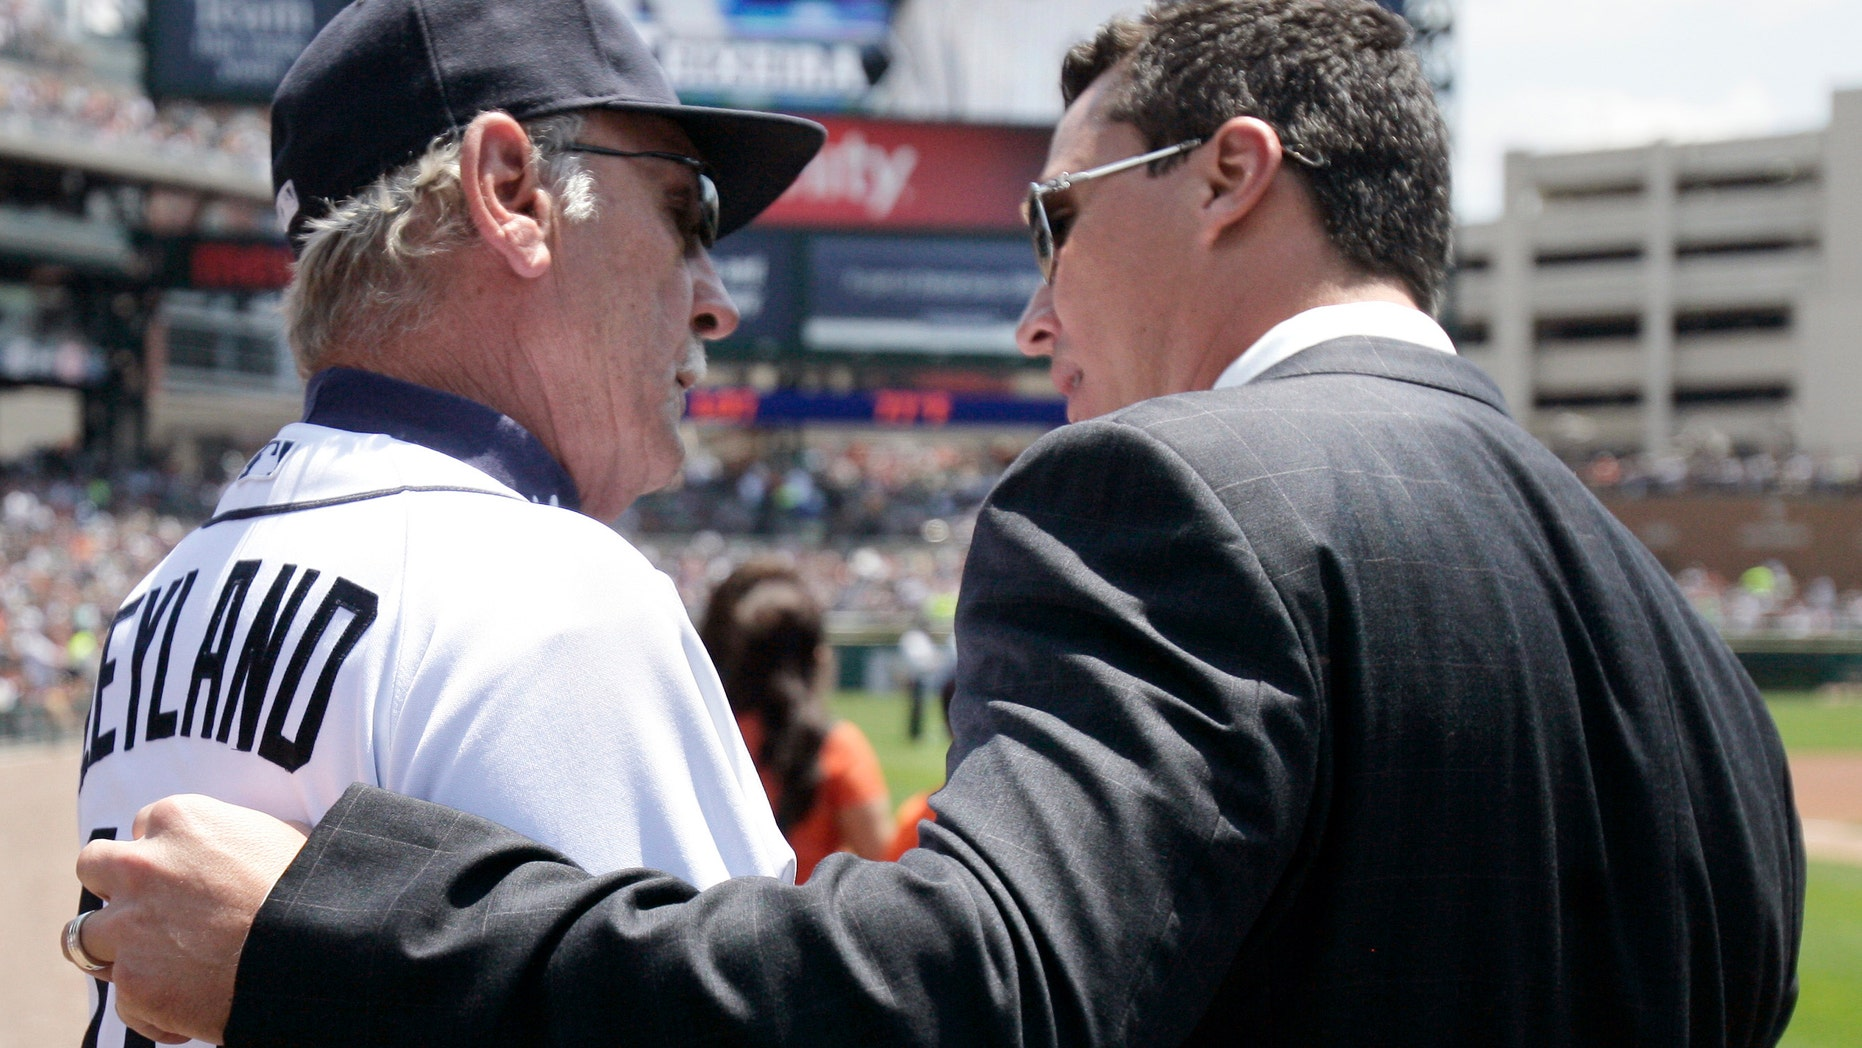 Former Detroit Tiger Magglio Ordonez, right, talks with Tigers manager Jim Leyland, left, following his retirement ceremony before a baseball game against the New York Yankees, Sunday, June 3, 2012, in Detroit. Ordonez has made his retirement official, ending a stellar career in which the outfielder hit .309 in 15 seasons with the Detroit Tigers and Chicago White Sox. (AP Photo/Duane Burleson)